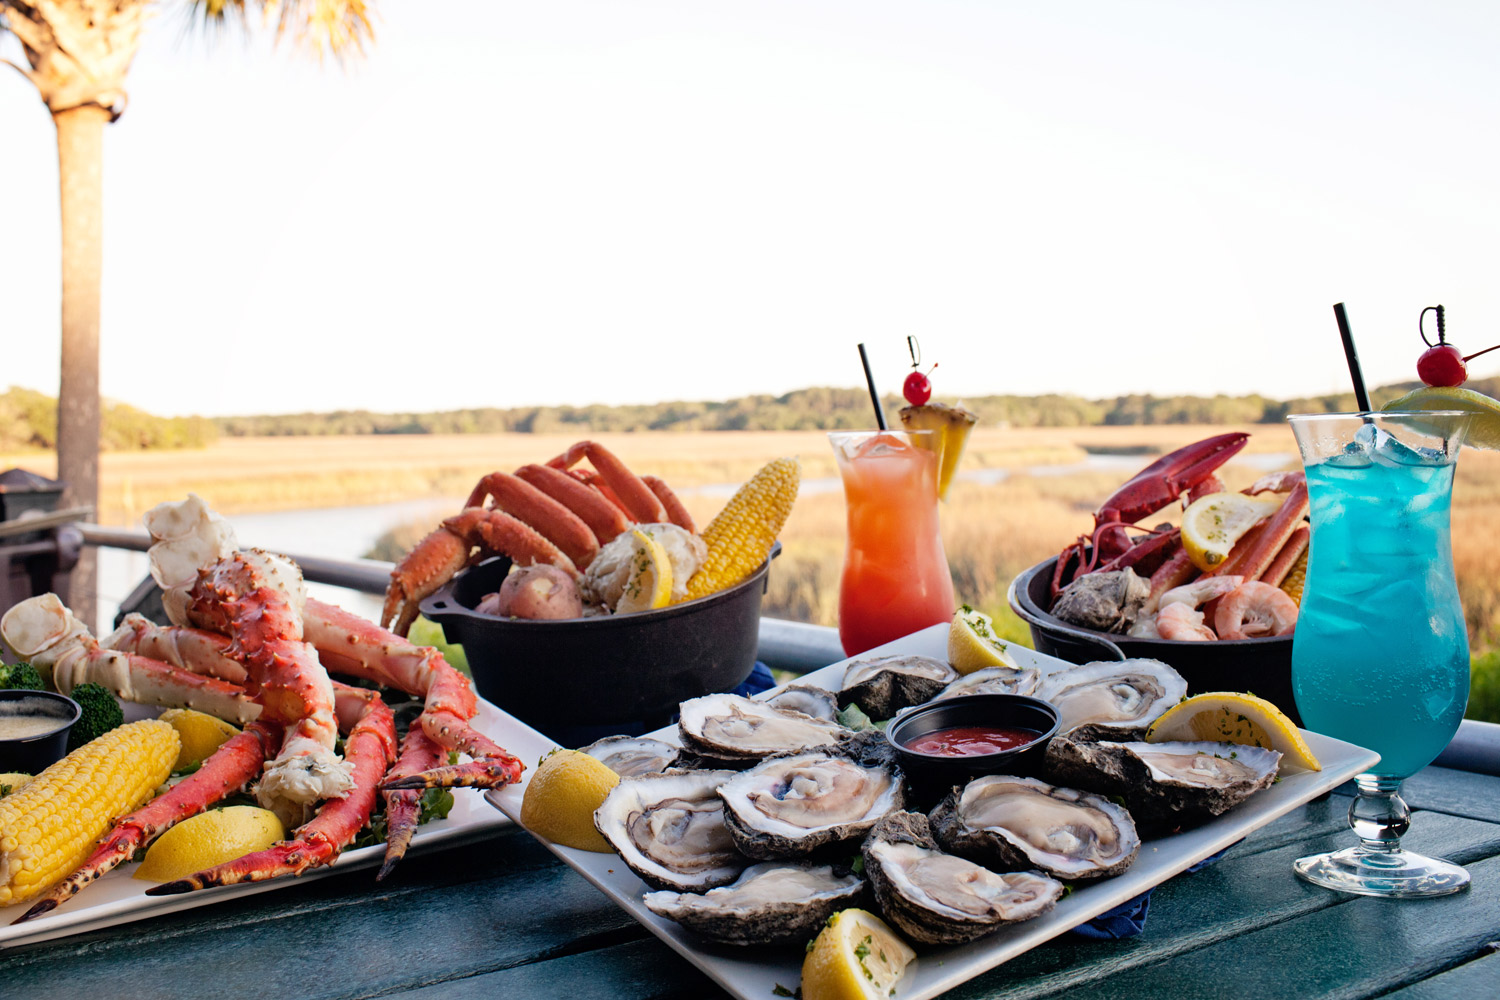 A Hilton Head Seafood Feast - Crab, Oysters, Cocktails!